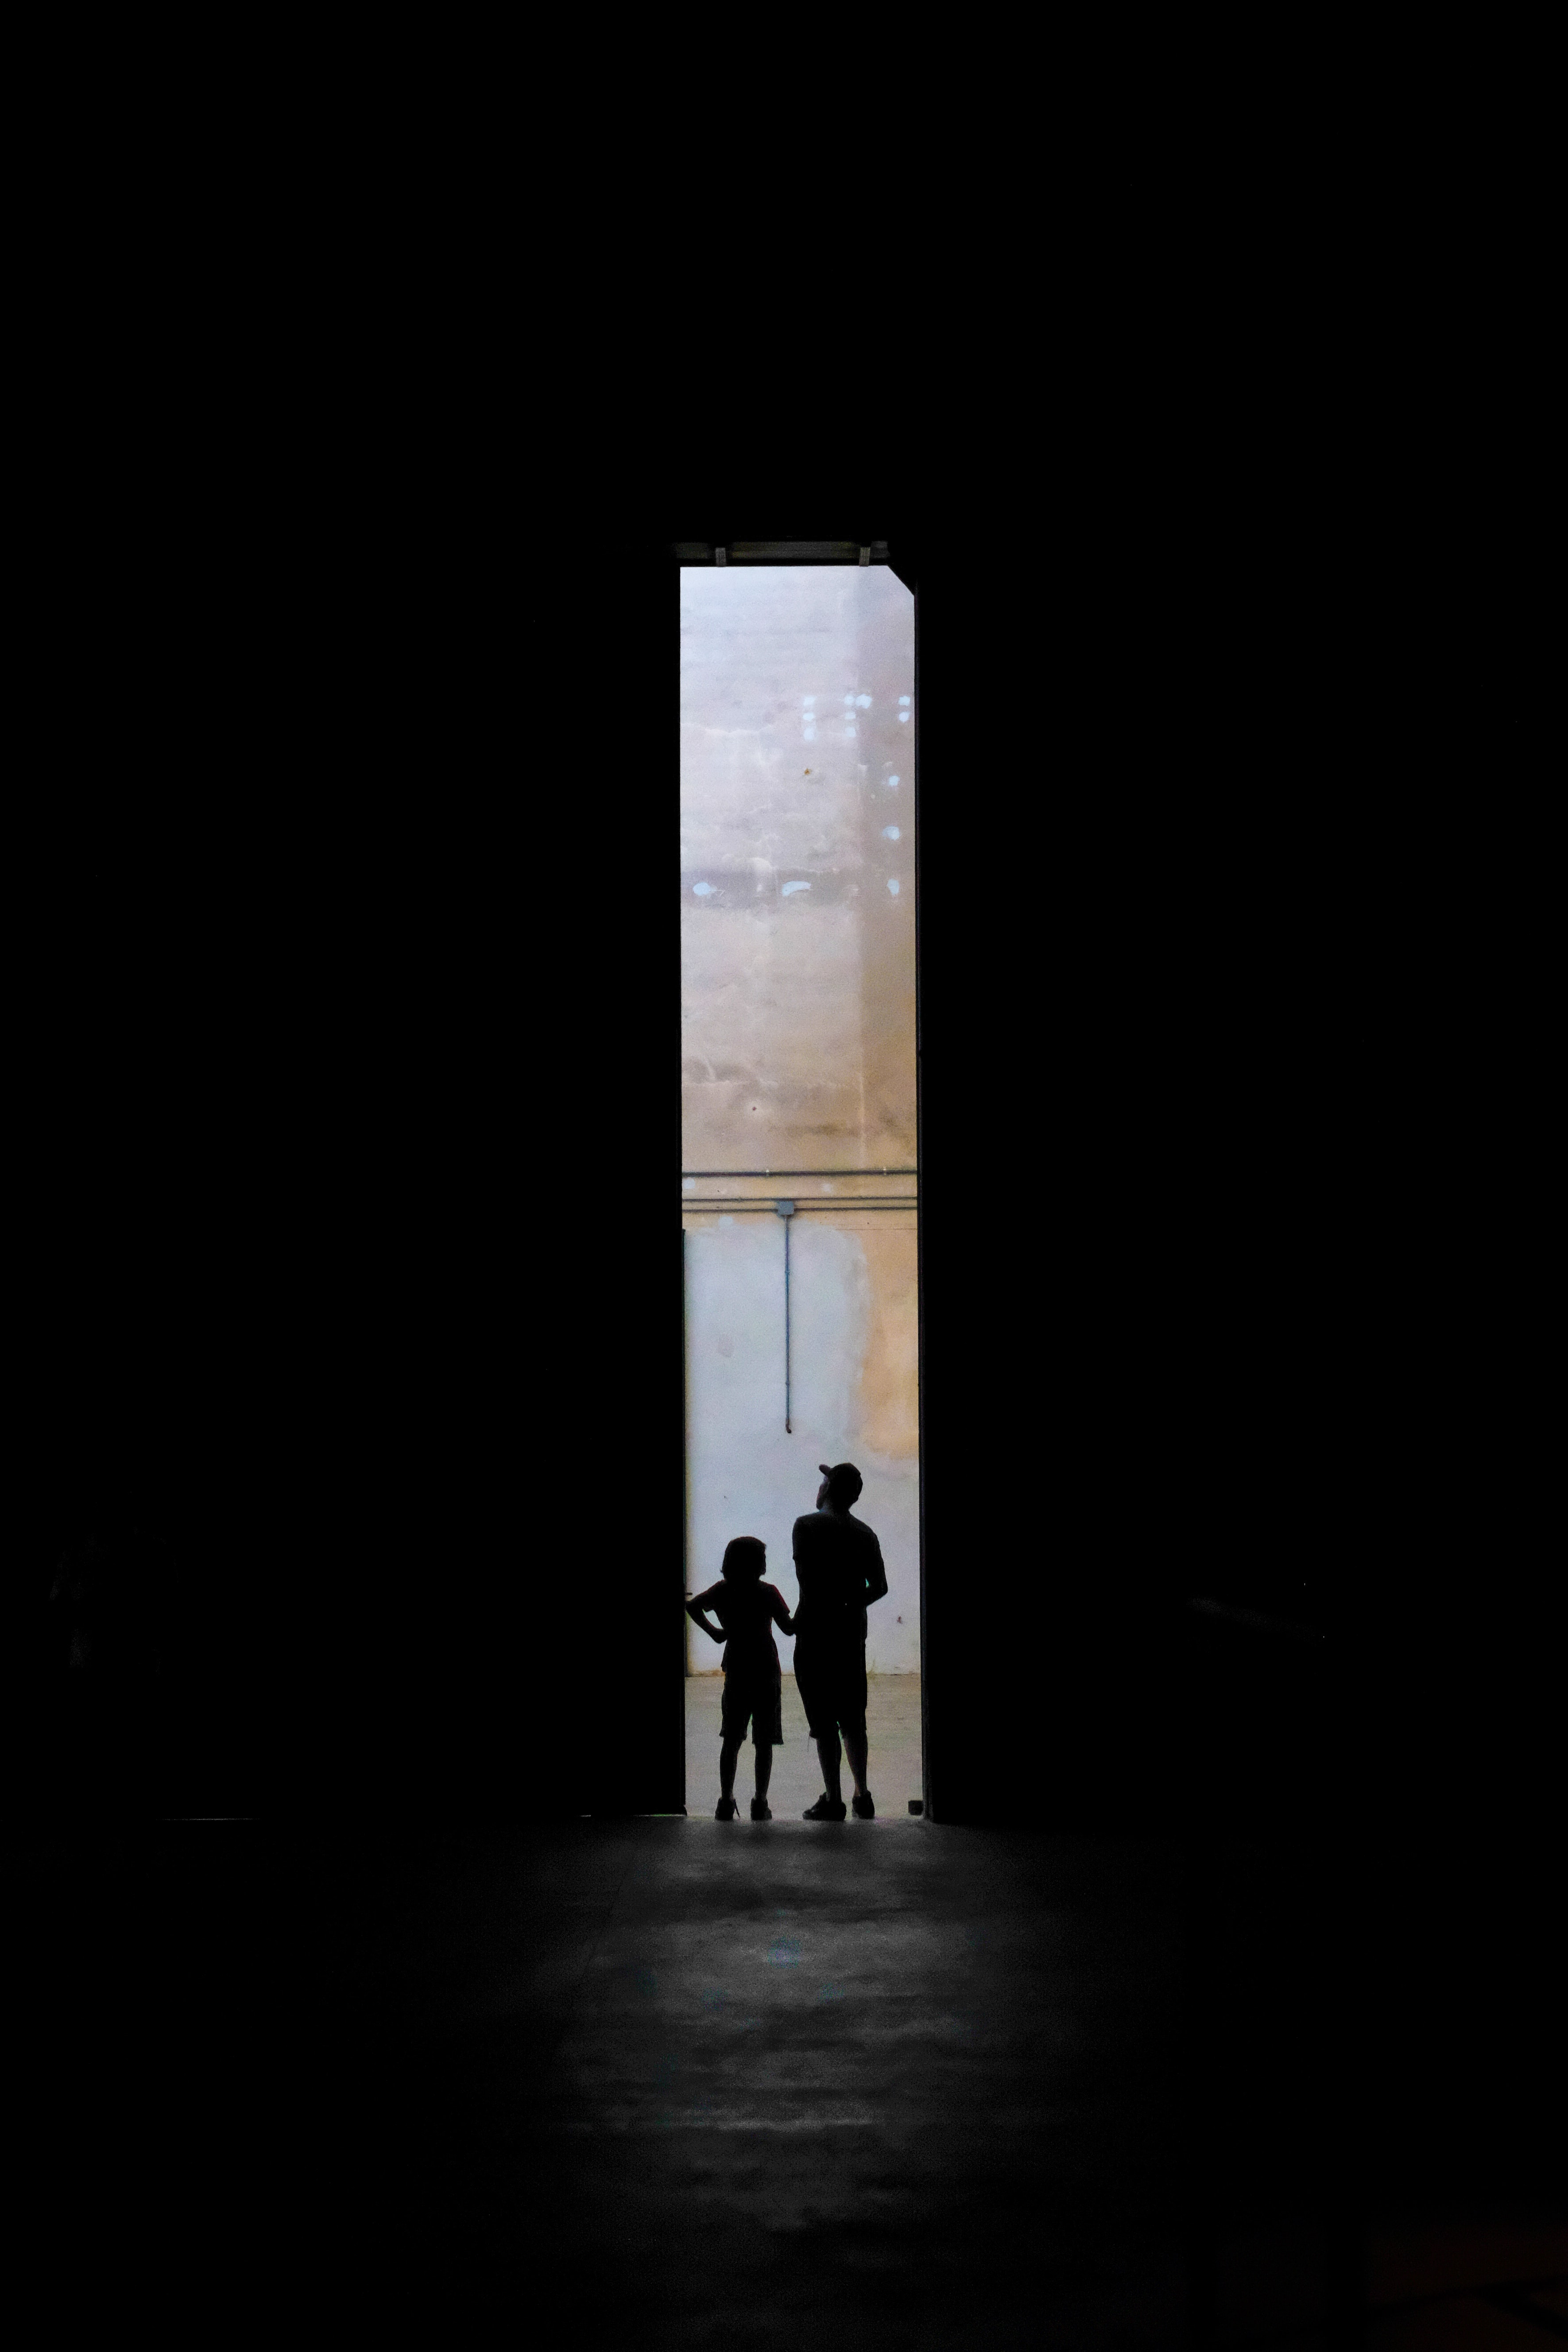 silhouette of two persons standing between doors